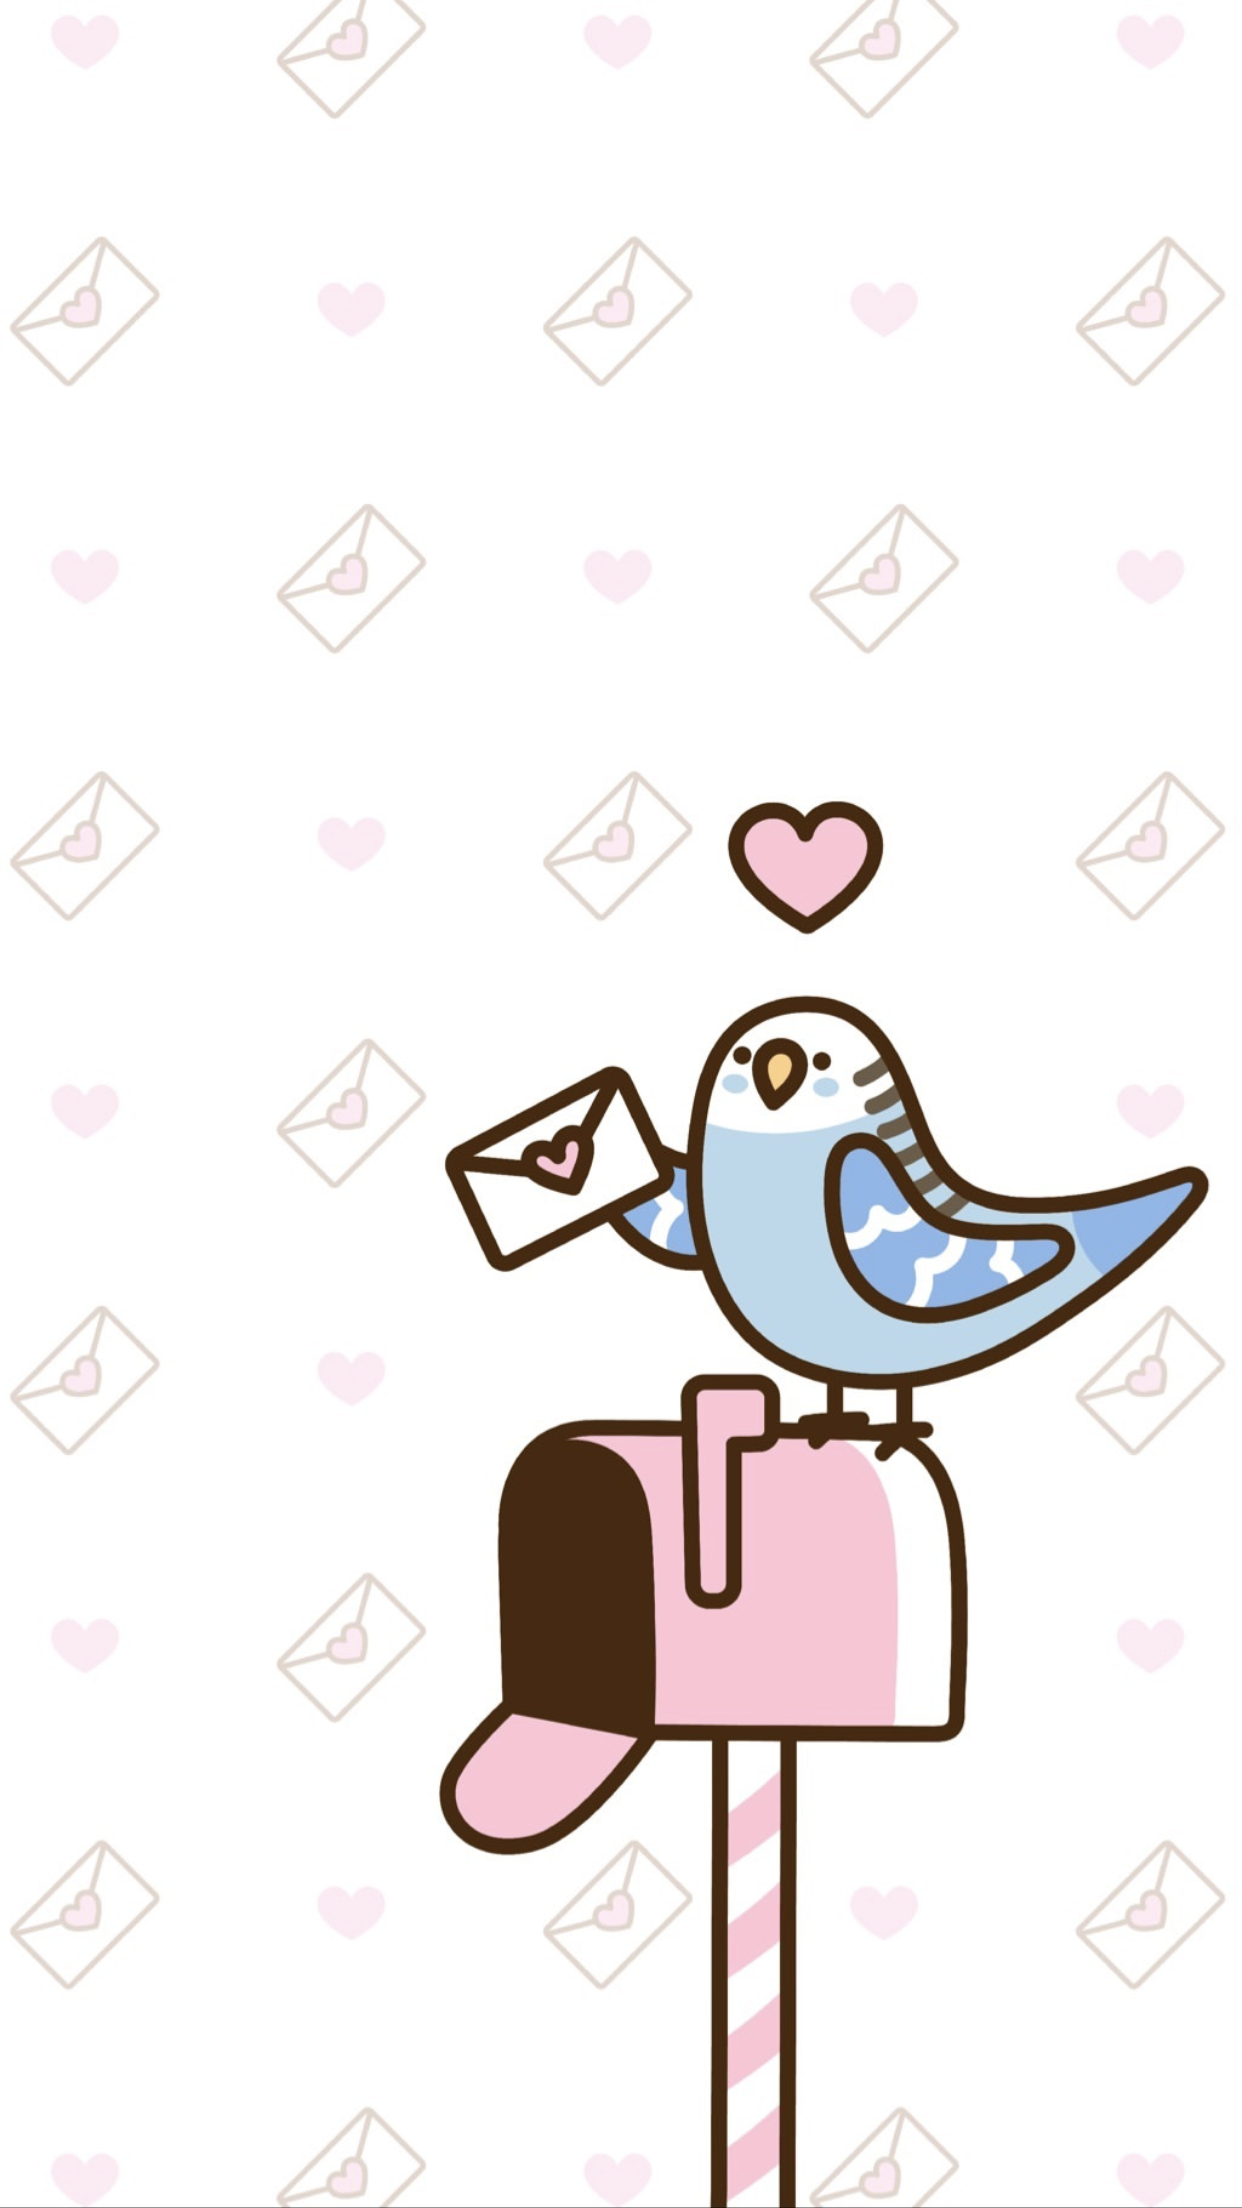 Pusheen The Cat Valentine S Day Iphone Wallpaper Kawaii Valentine Valentines Wallpaper Cute Pink Background